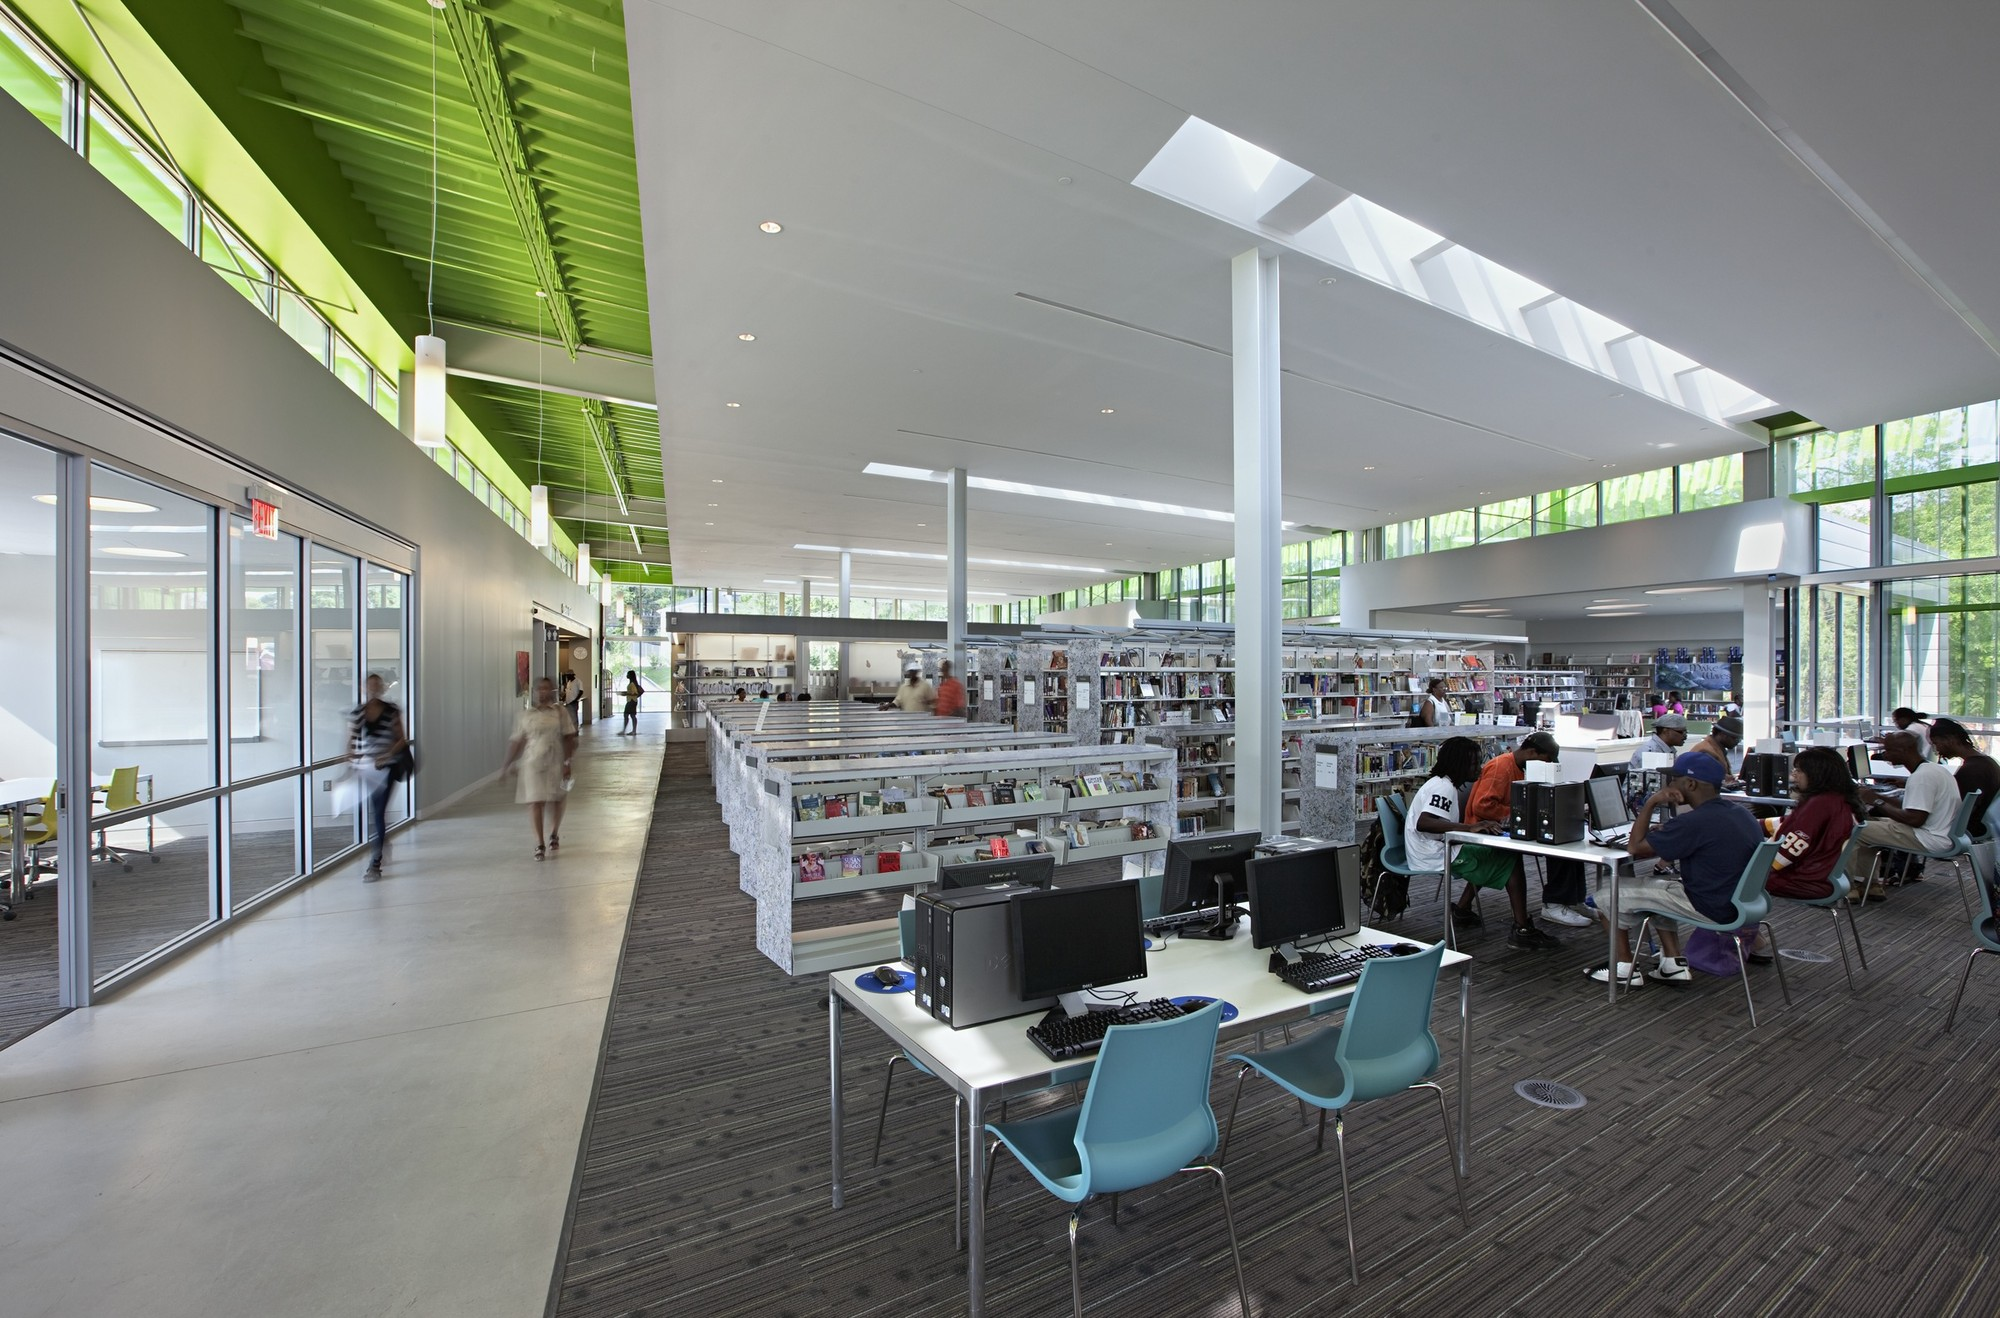 Anacostia Neighborhood Library; Washington, D.C. / The Freelon Group © Mark Herboth Photography